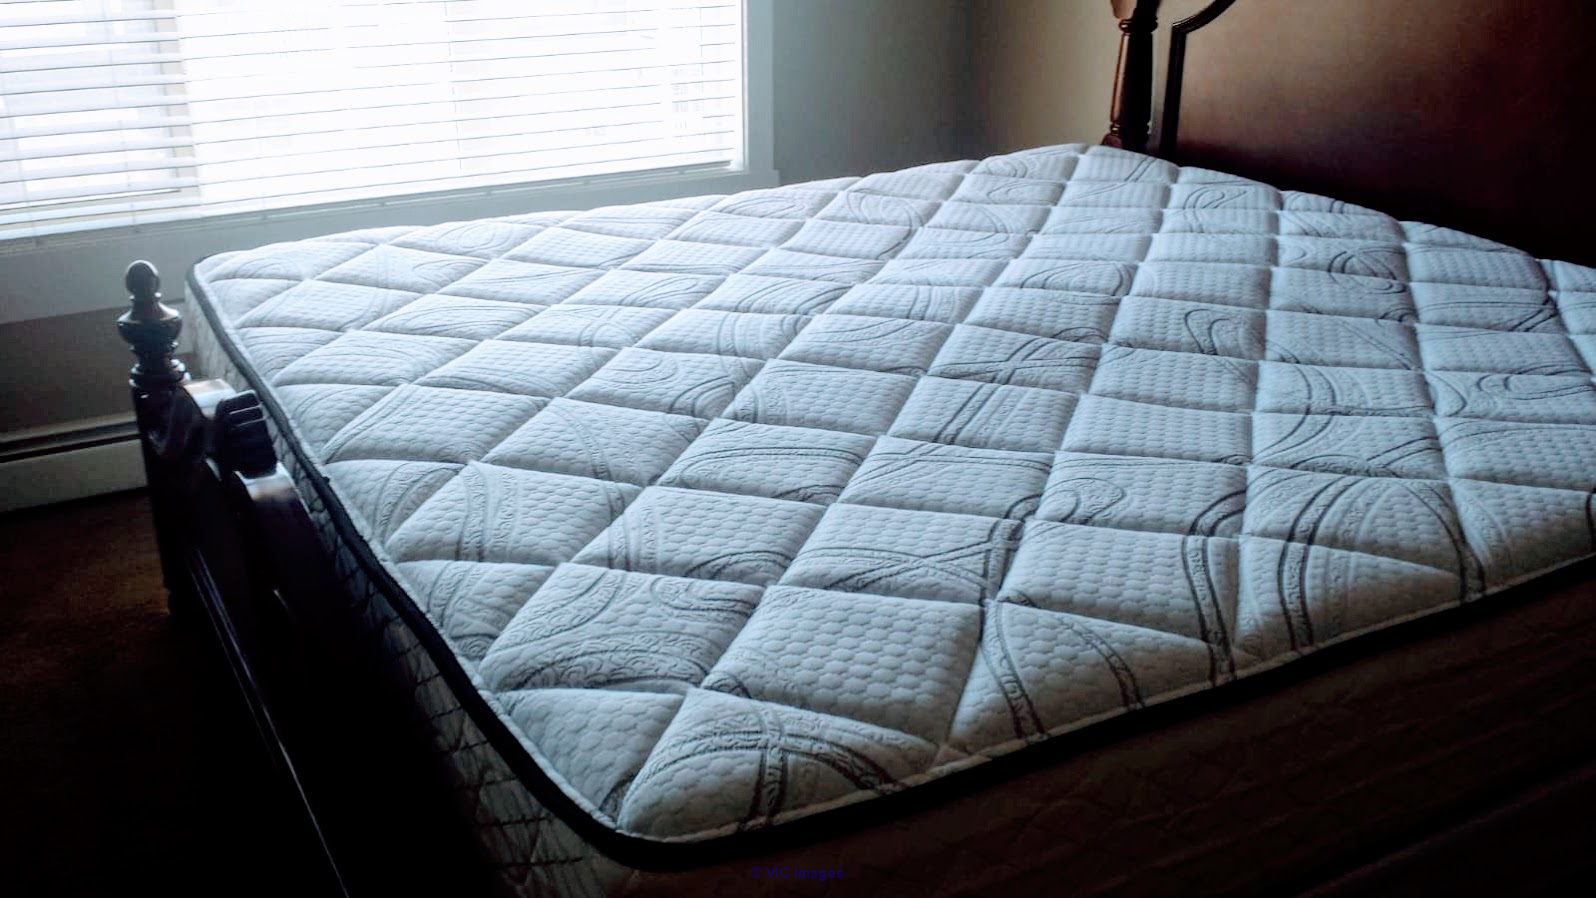 Like New Serta King Size Mattress + 2 Twin Box Spring $495 Calgary, Alberta, Canada Annonces Classées